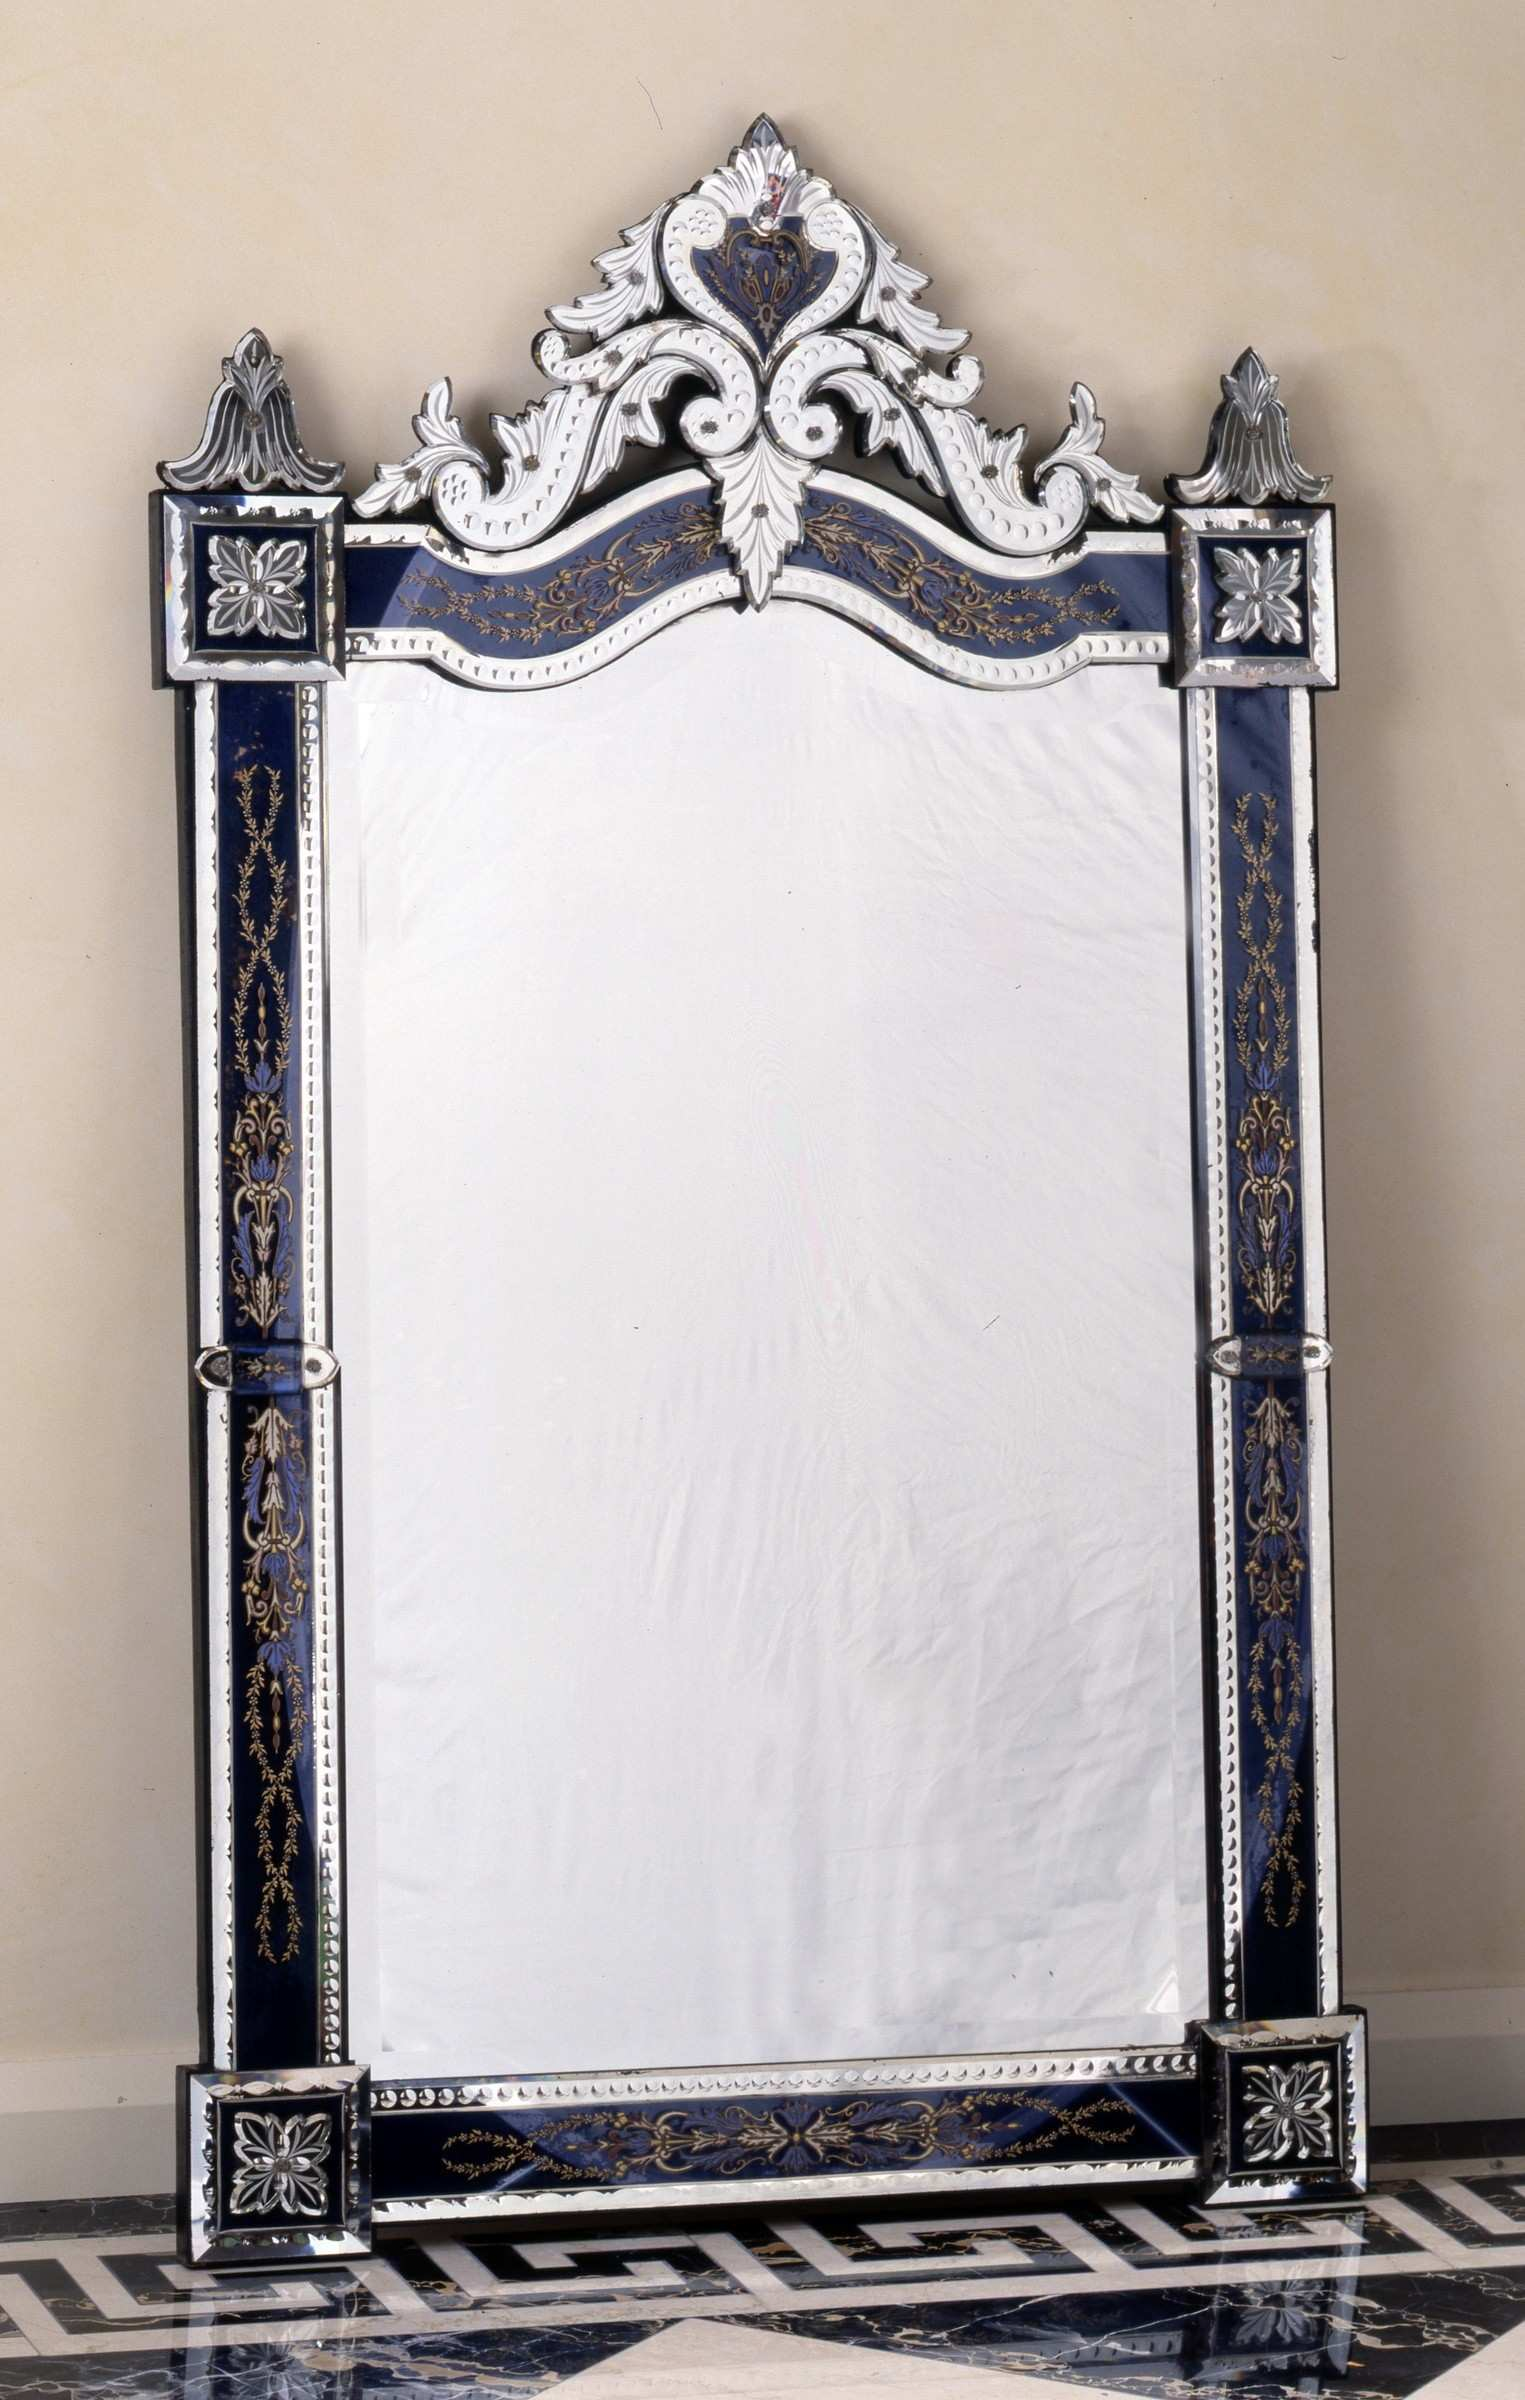 Murano A 19th century Murano Venetian wall mirror of rectangular